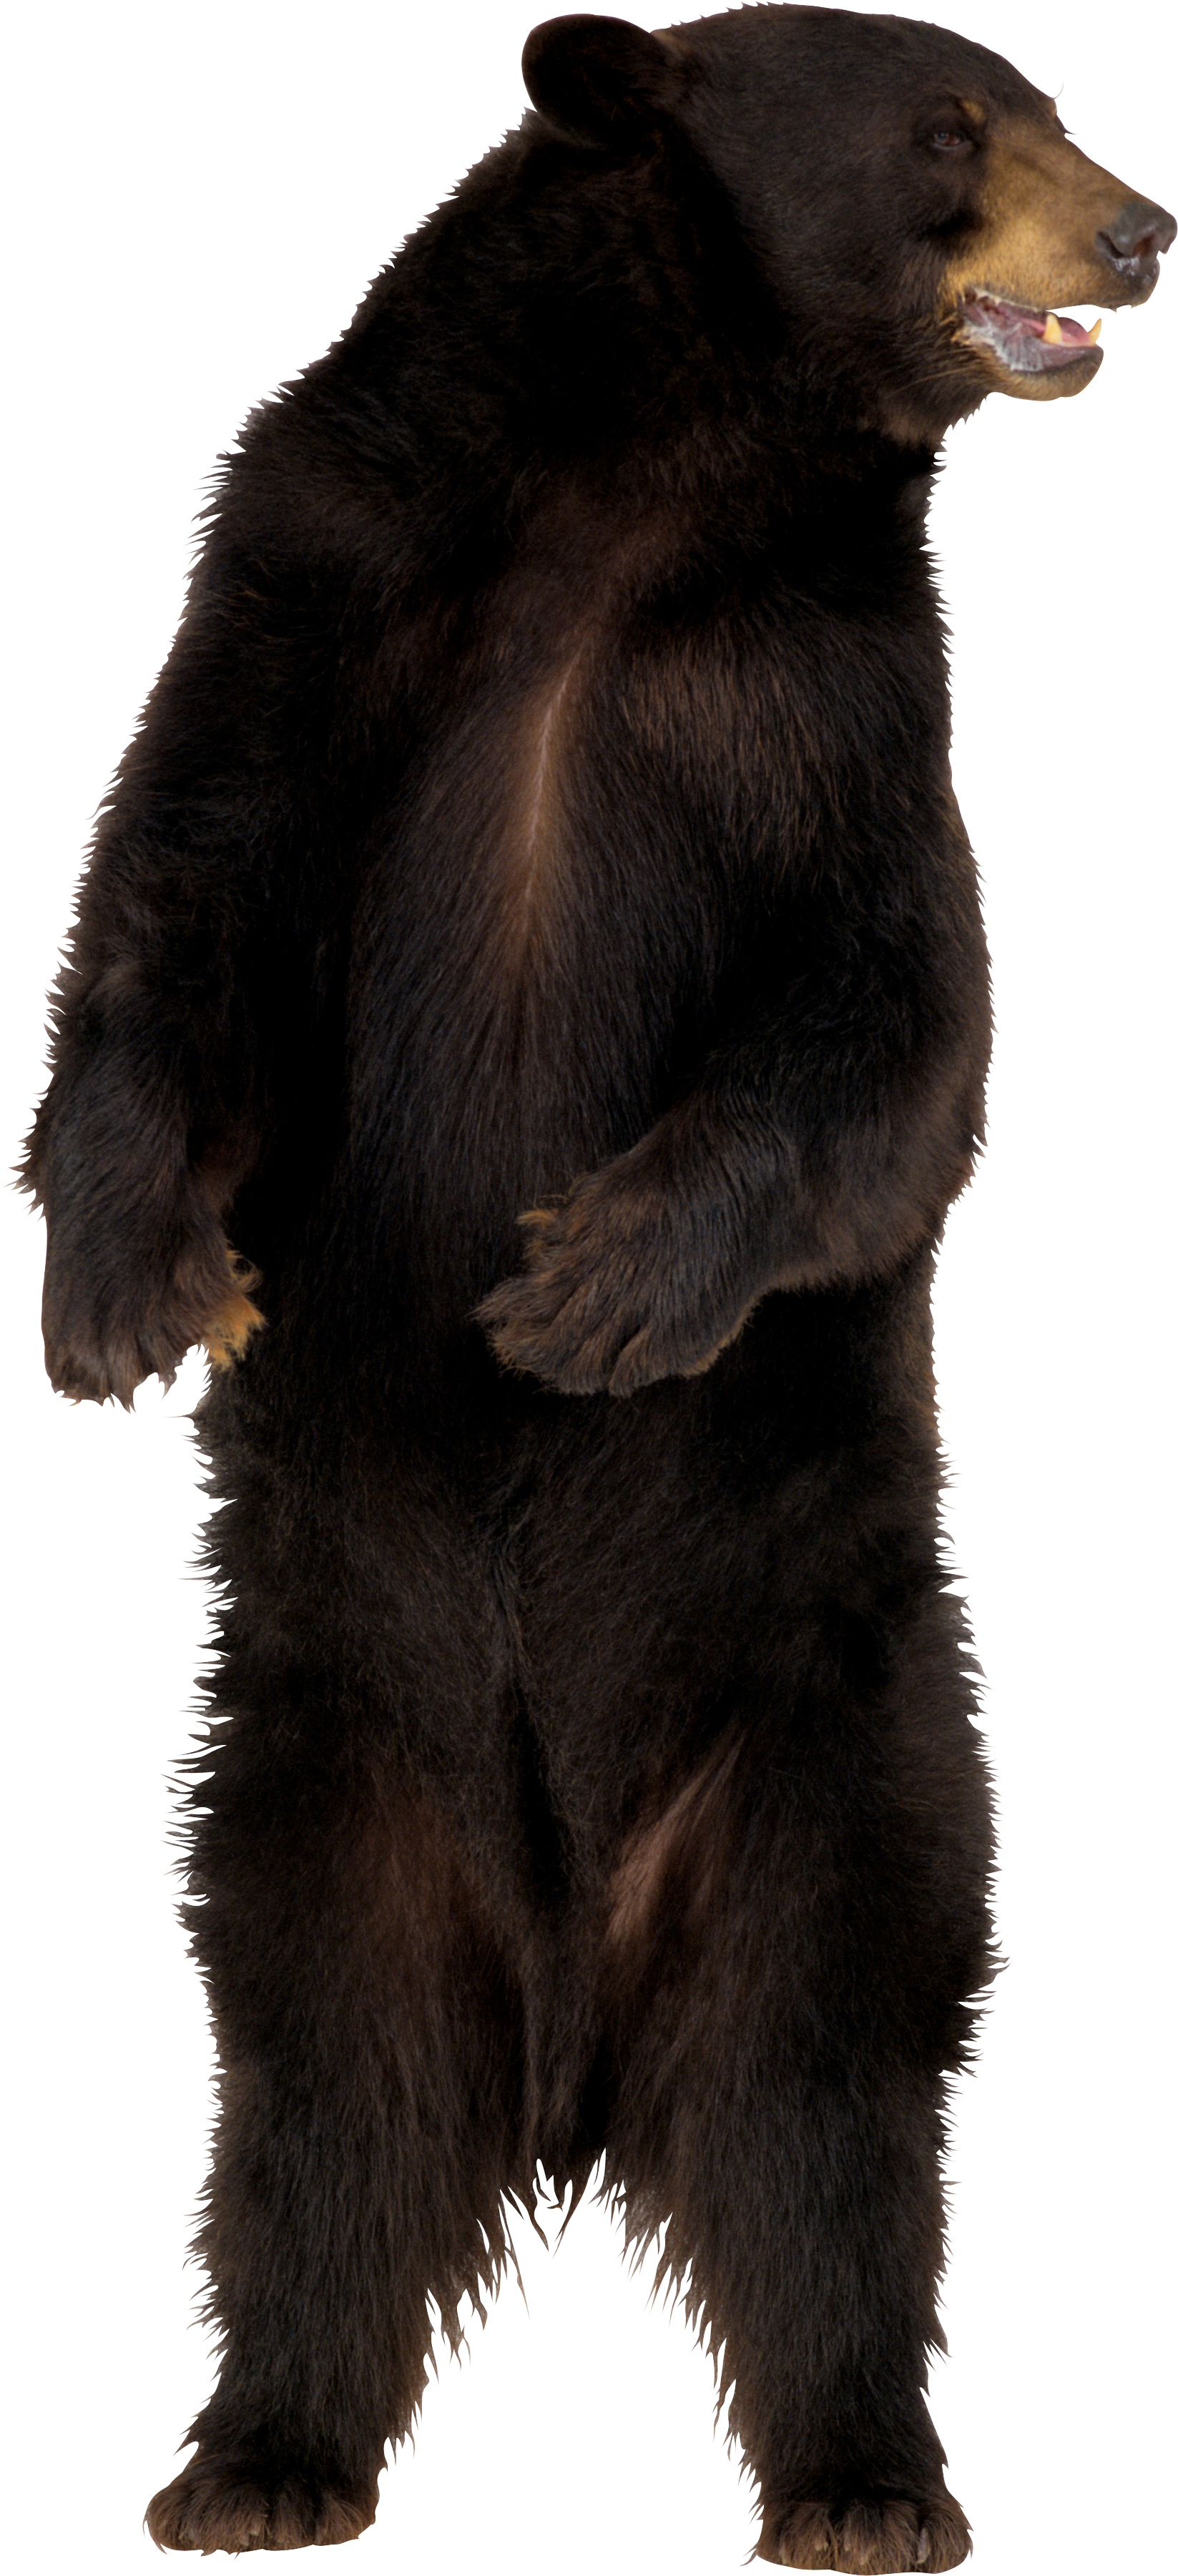 Bear Png - brown bear PNG image